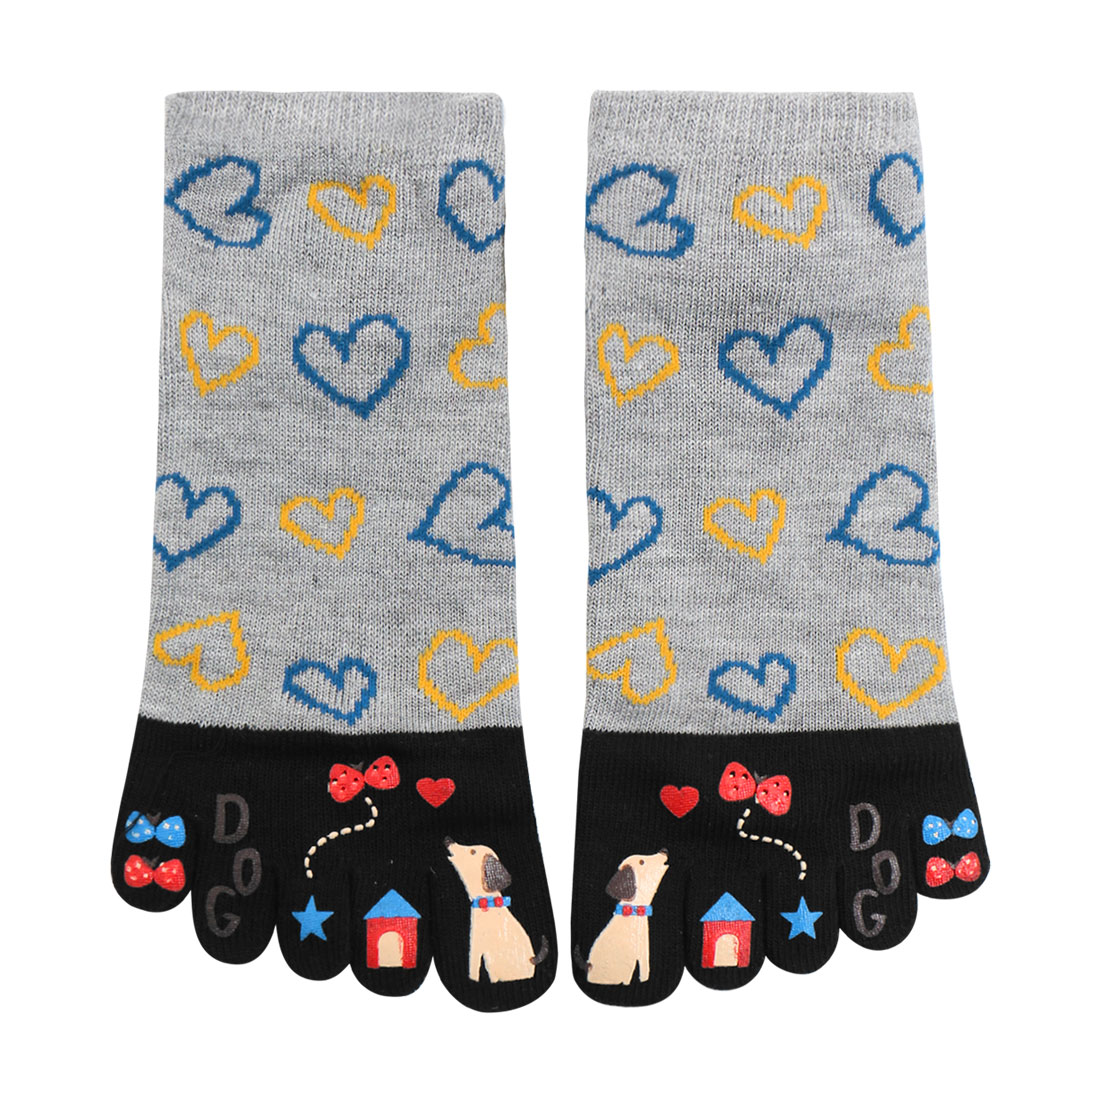 Tasharina Women's Heart Cartoon Pattern Elastic Cuffs Stretchy Toe Socks Gray